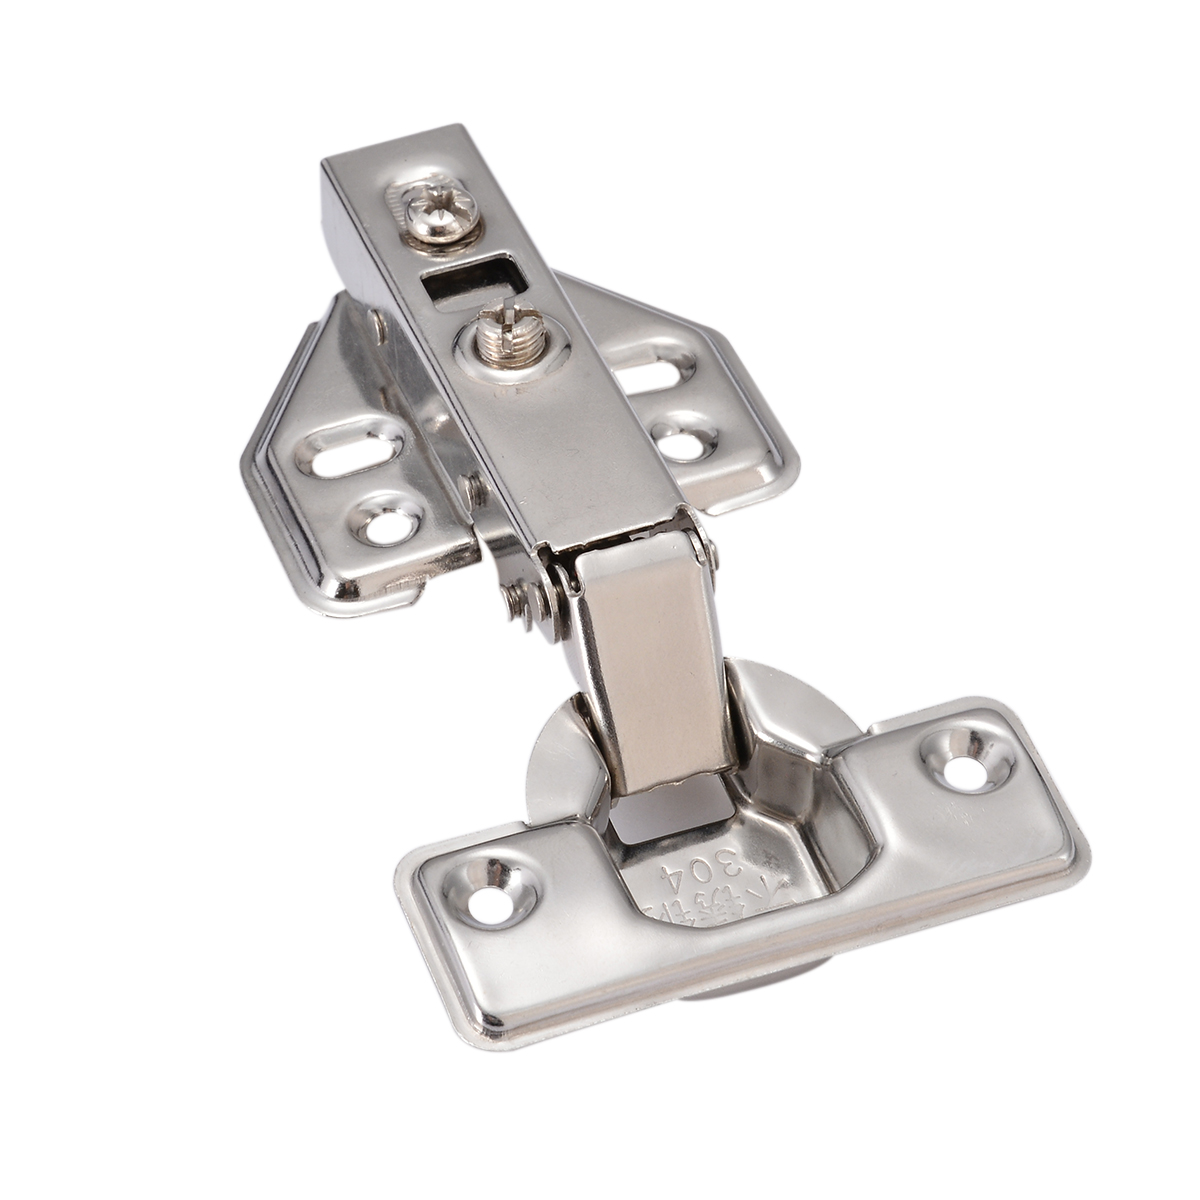 Full Overlay Hydraulic Hinge Plate No-Drilling Hole Door Hinge Safety Damper Buffer For Cabinet Cupboard Furniture Hardware цены